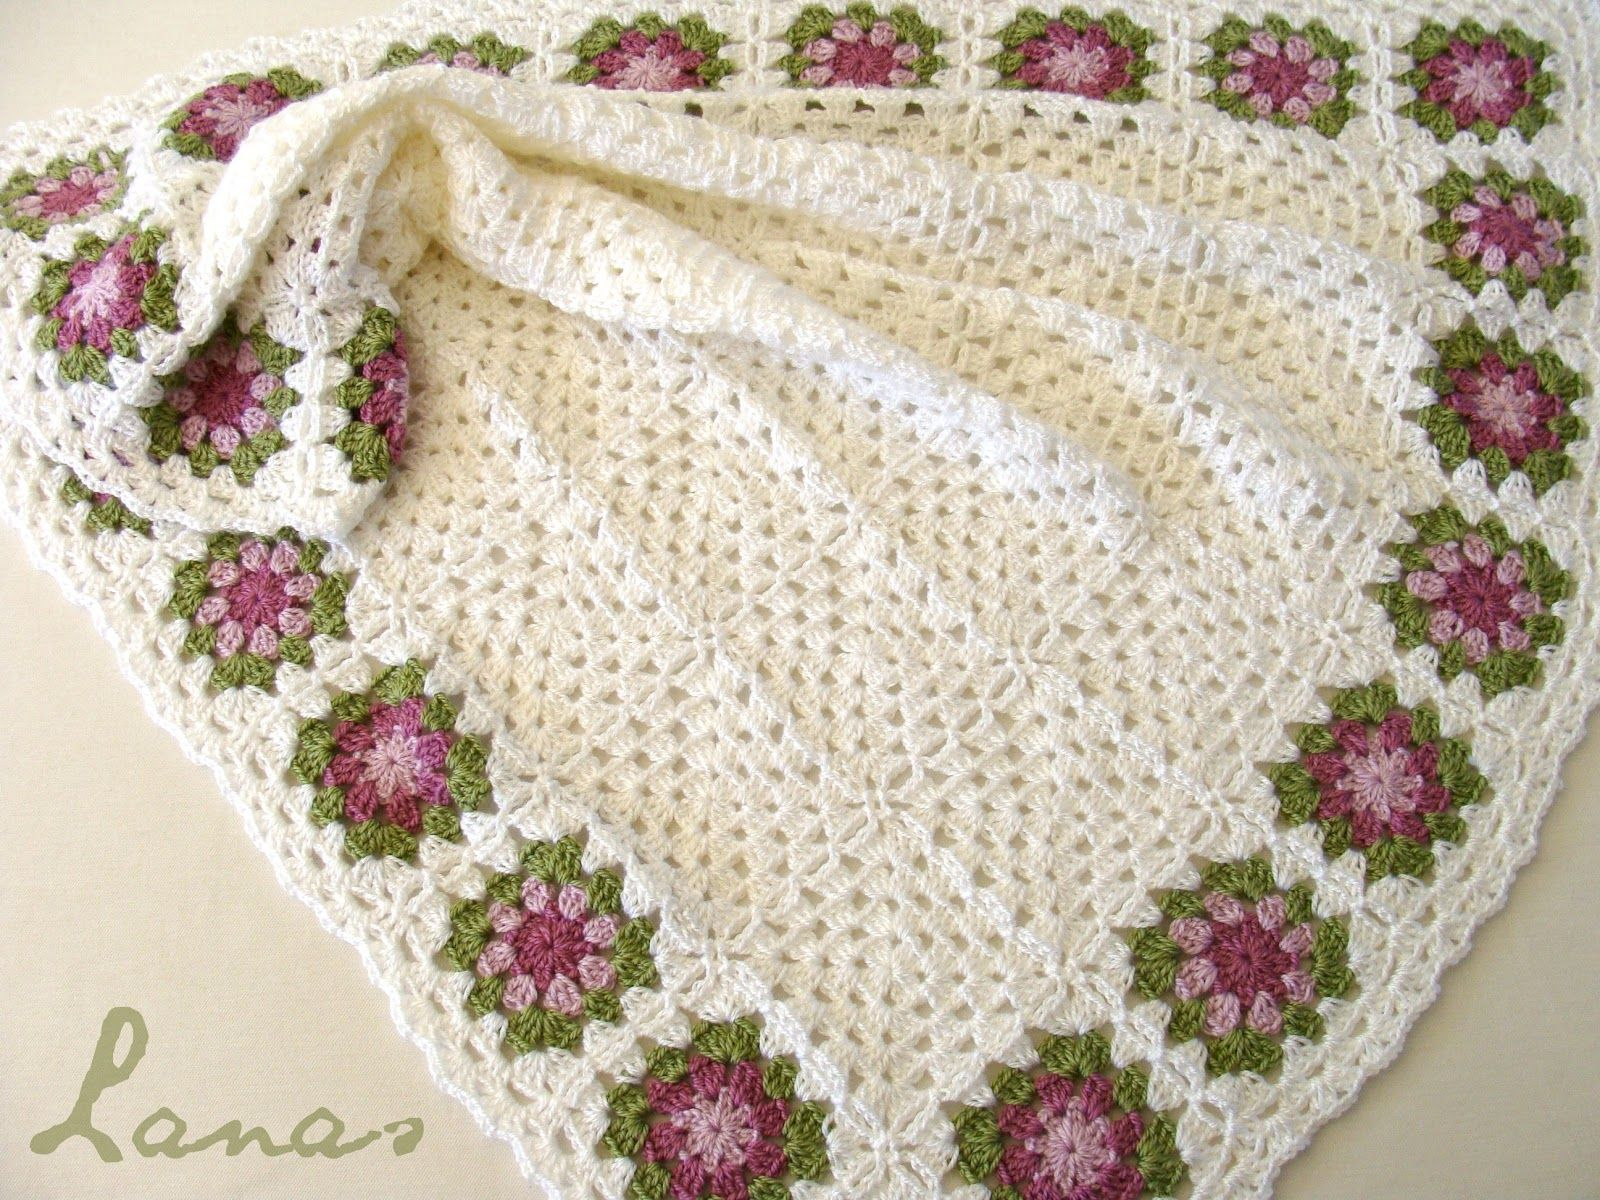 crochet blankets | My mom made this babyblanket, with white granny ...